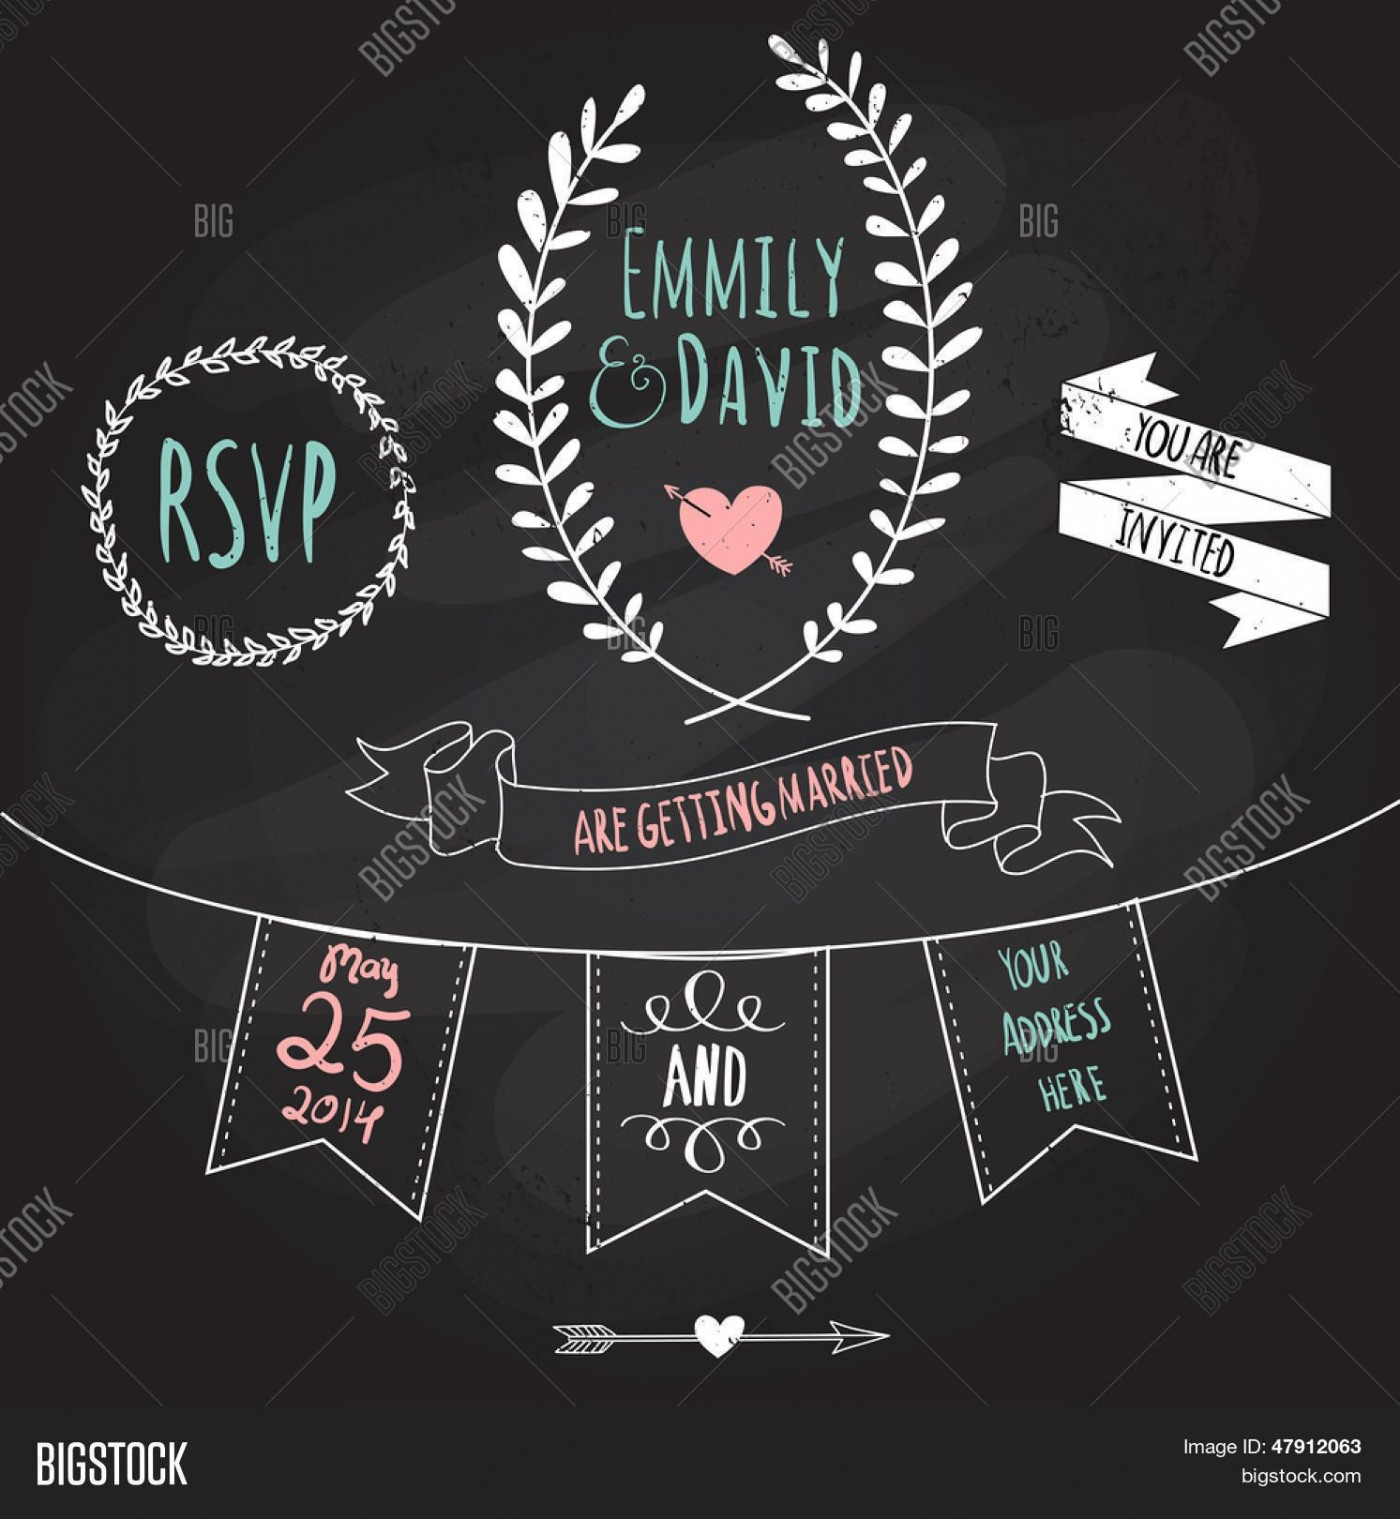 003 Simple Chalkboard Invitation Template Free Sample  Download Wedding1400